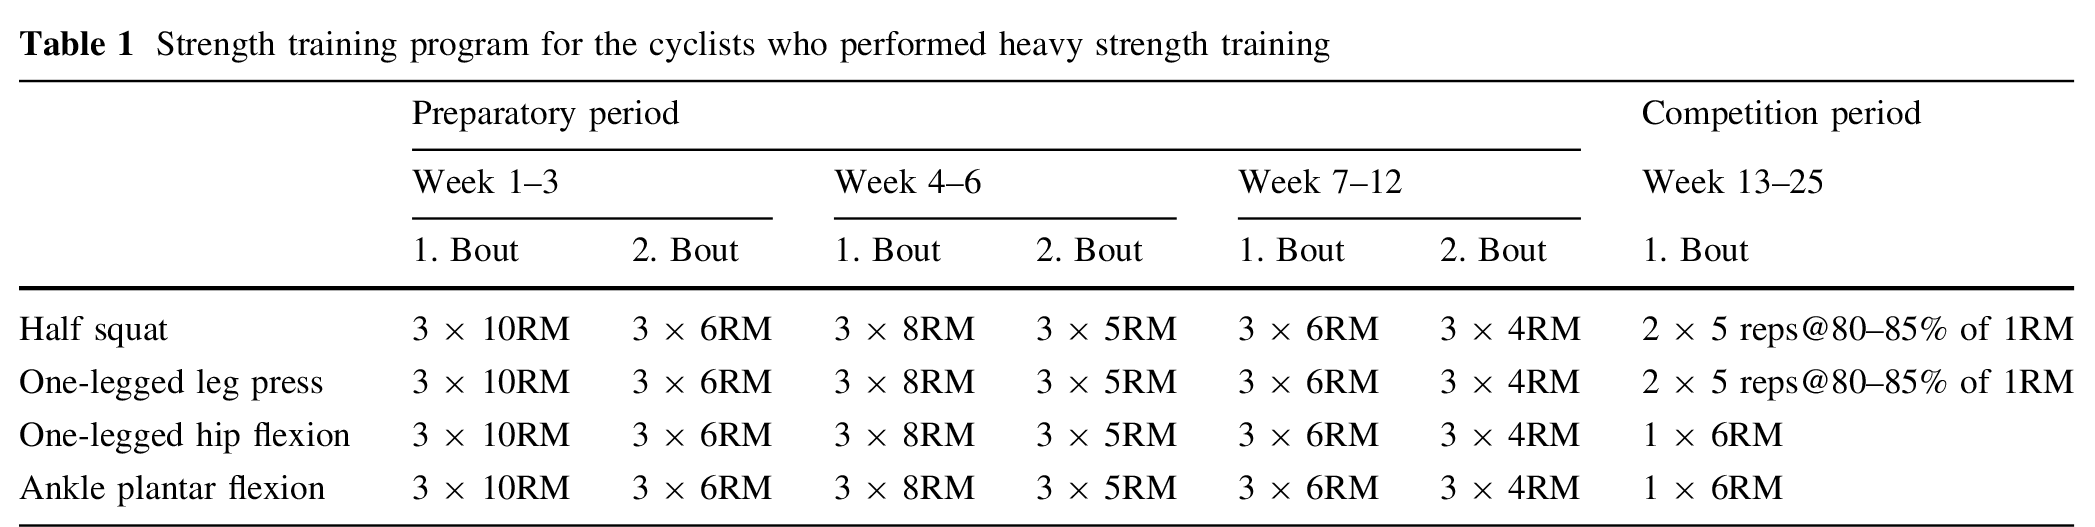 Strength training program for cyclists